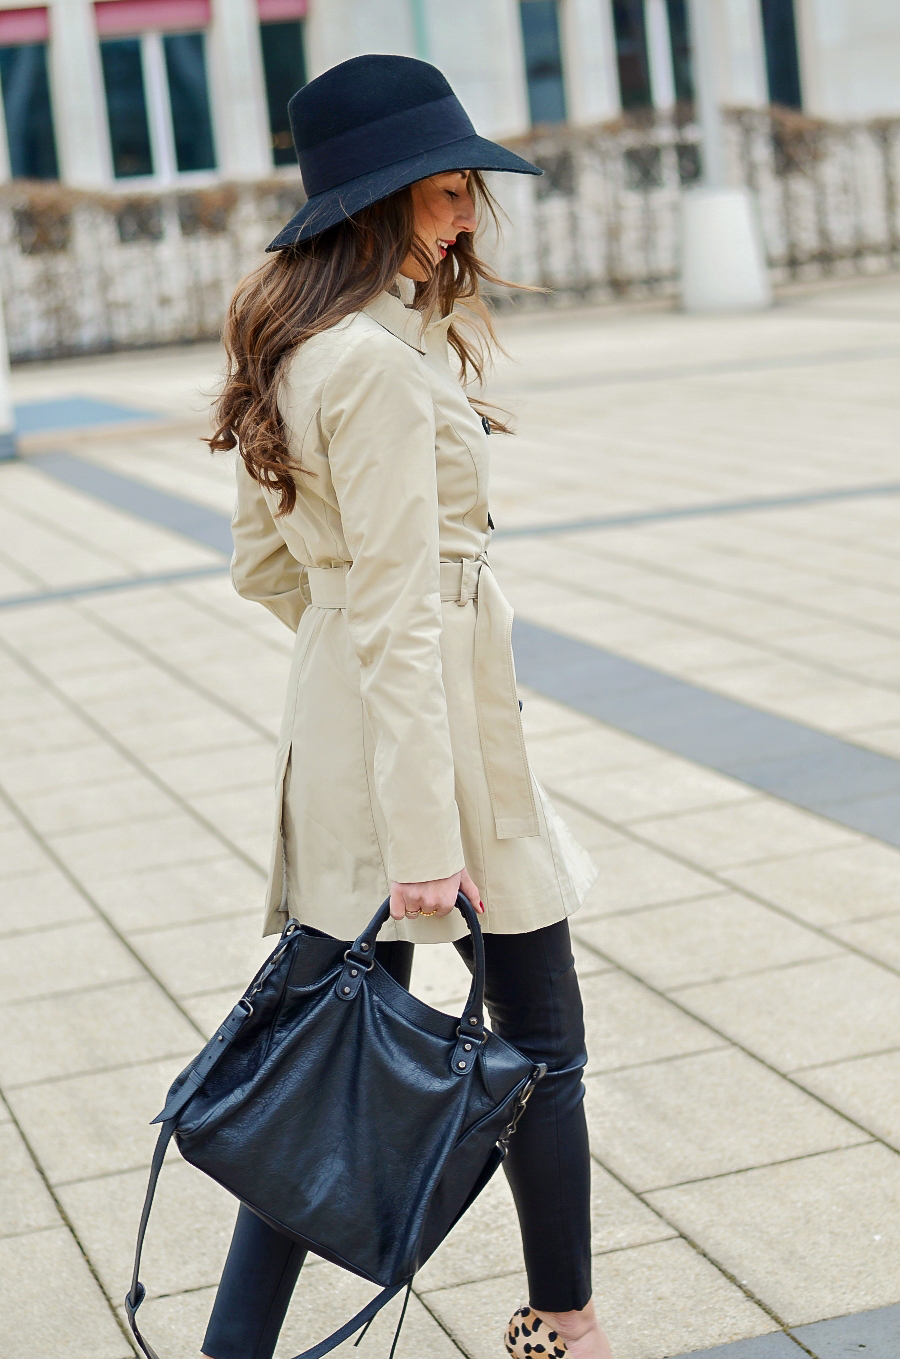 trenchcoat outfit style fashionblog